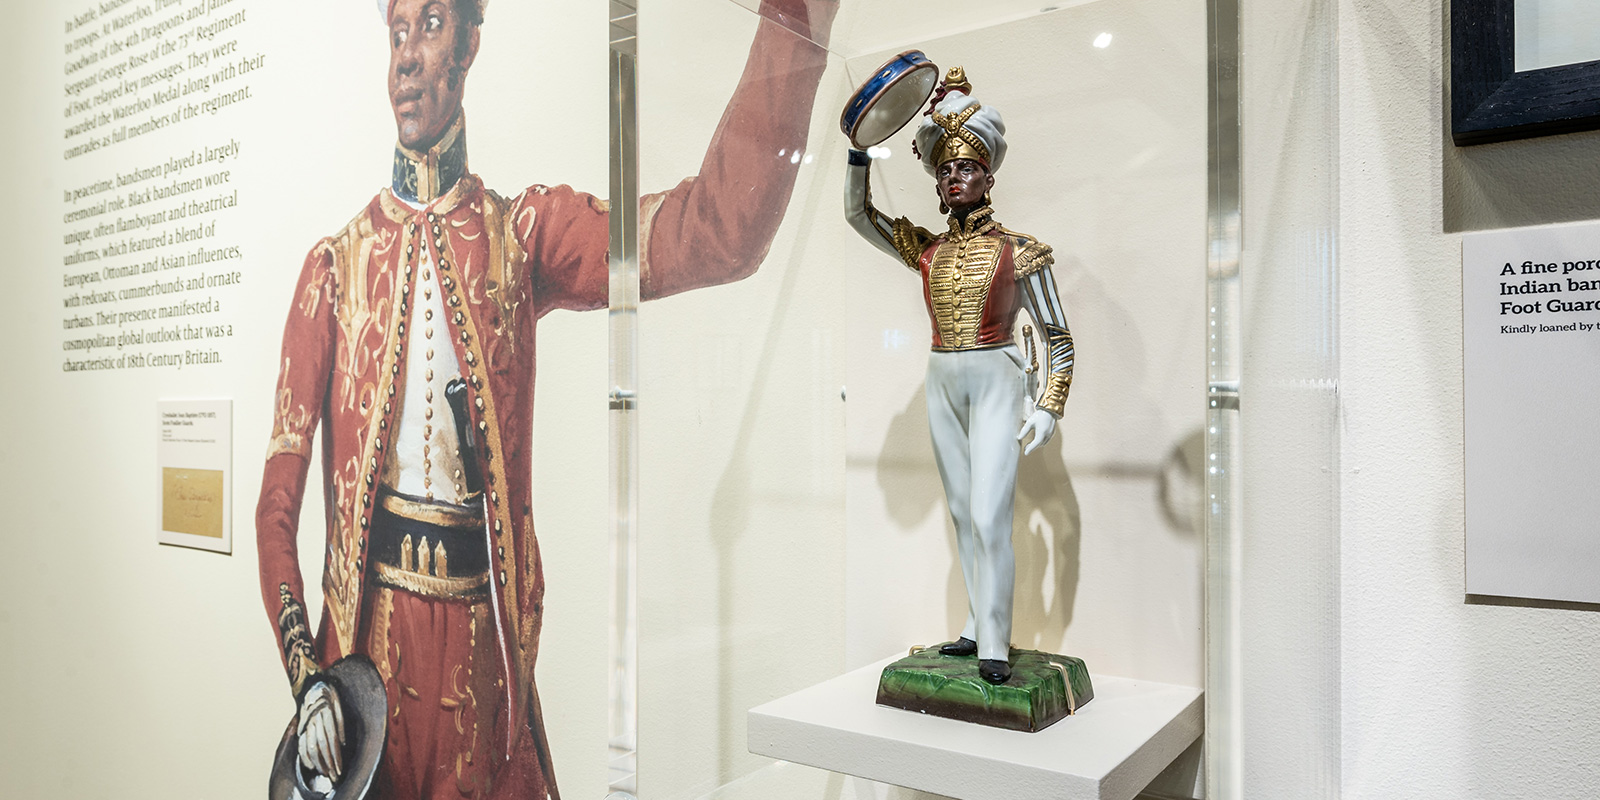 Porcelain statuette of a West Indian bandsman in the Grenadiers, mid- to late-18th century